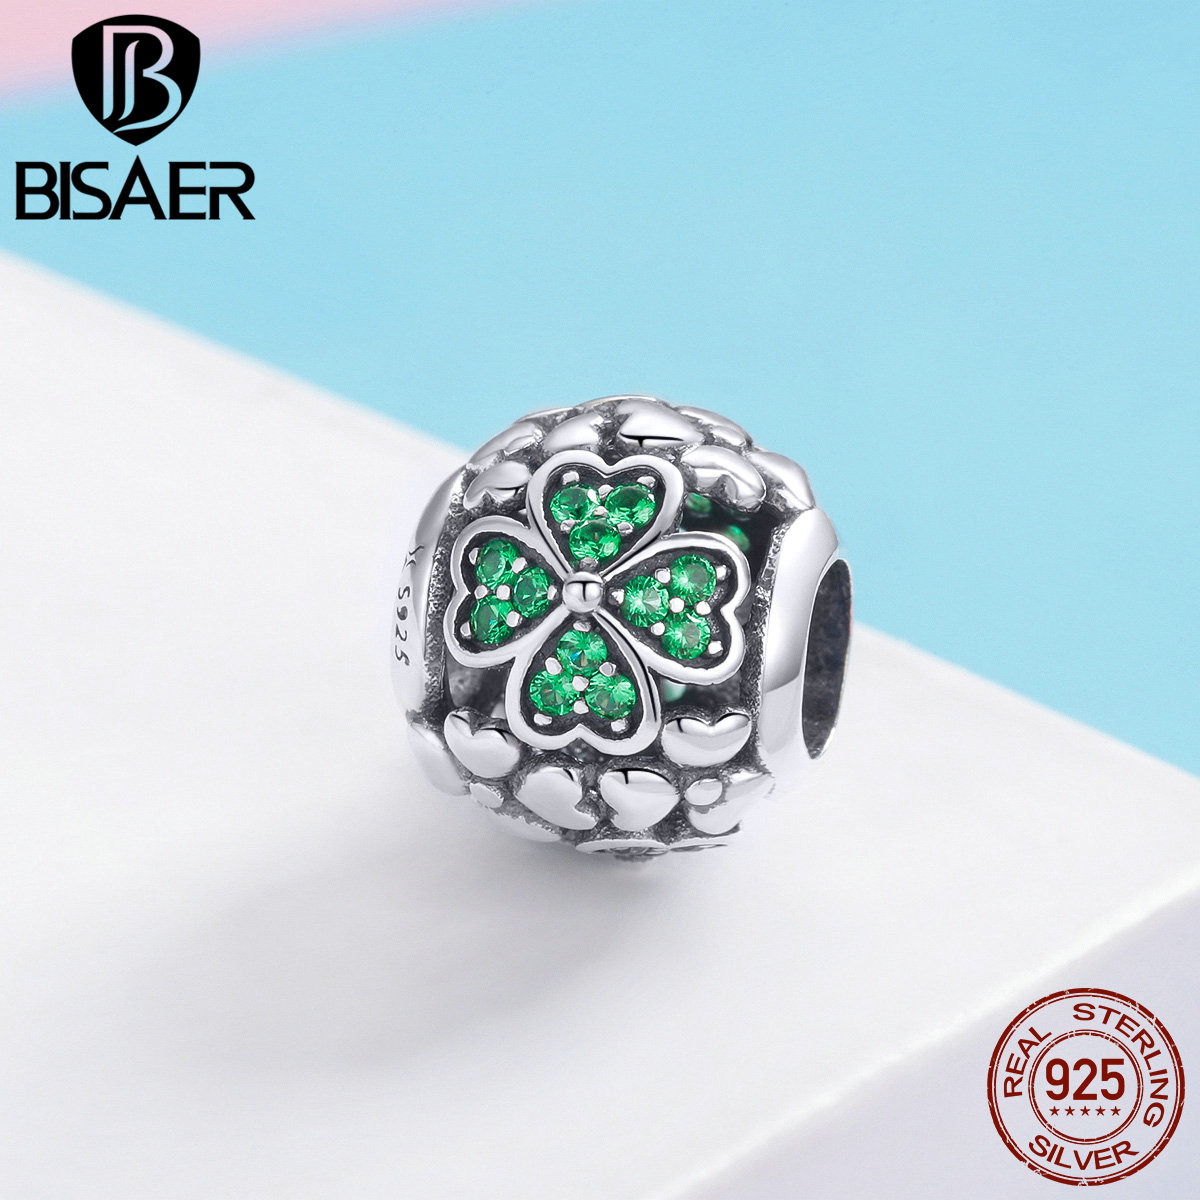 BISAER 925 Sterling Silver Green Hope Leaves Shamrock Clover Charm Beads fit Beads DIY Sterling Silver 925 Jewelry Making ECC964(China)